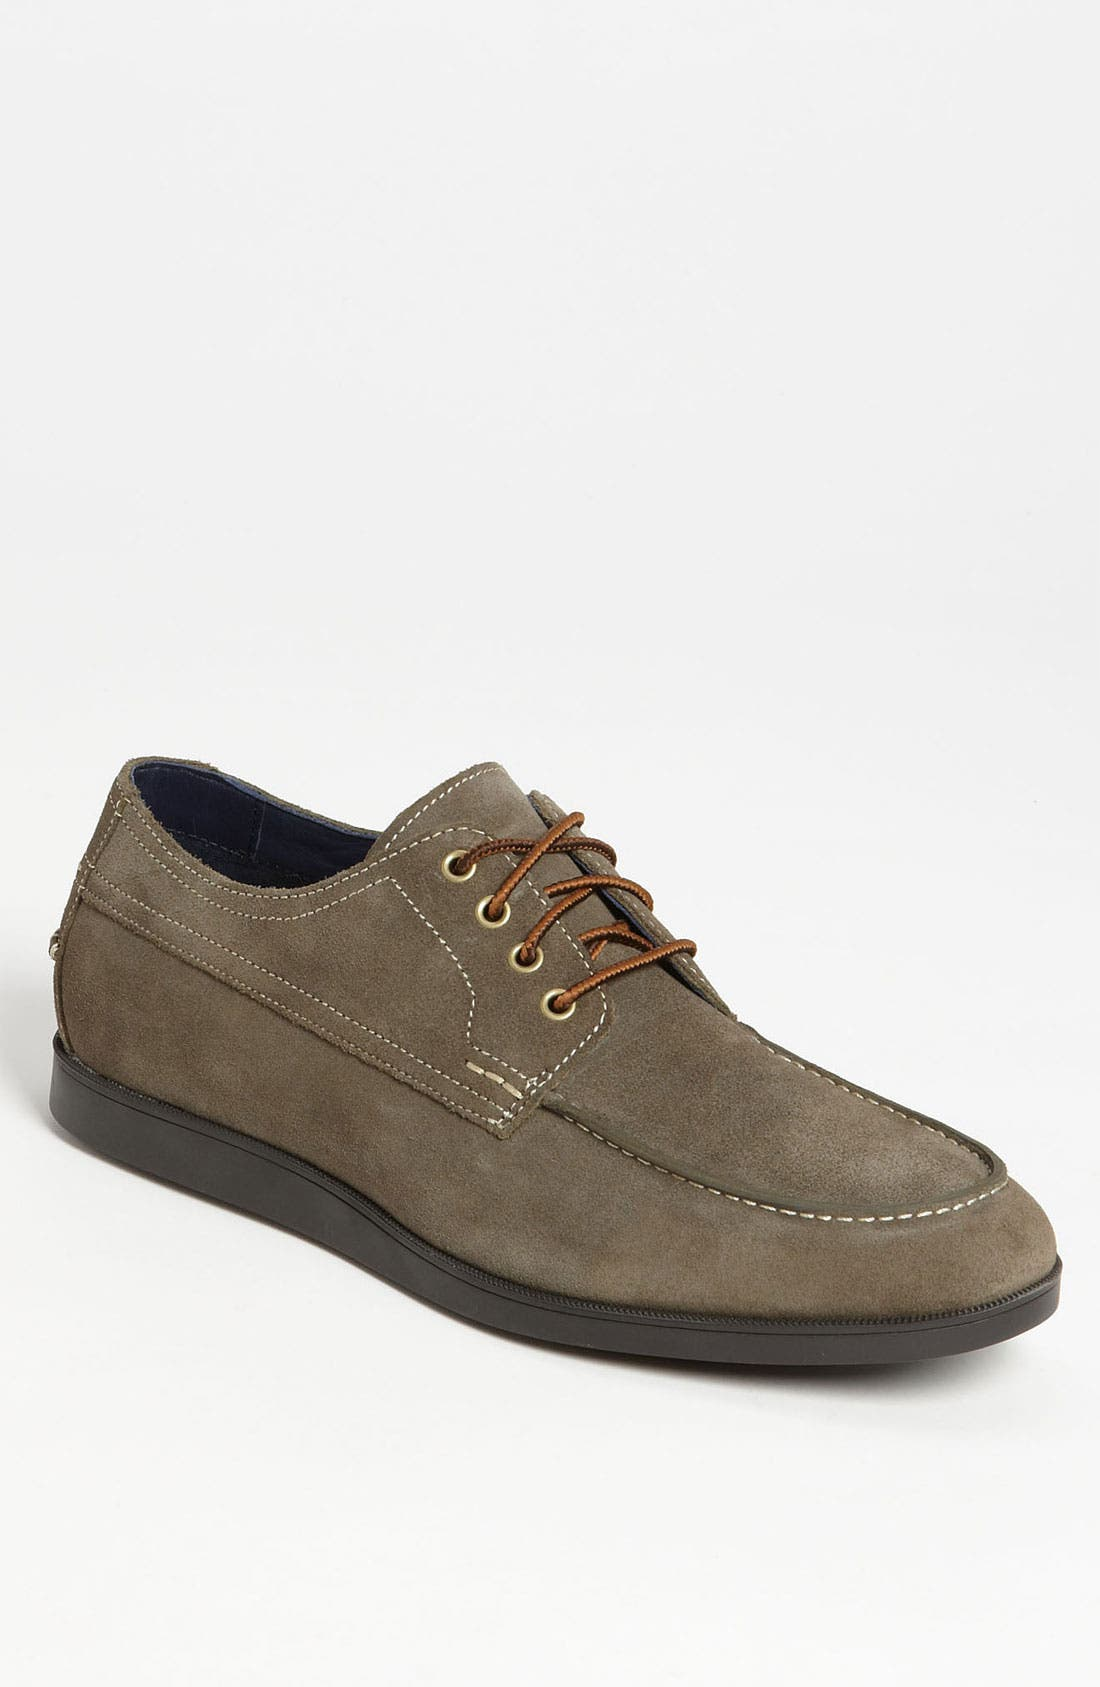 Alternate Image 1 Selected - Cole Haan 'Air Mason' Derby